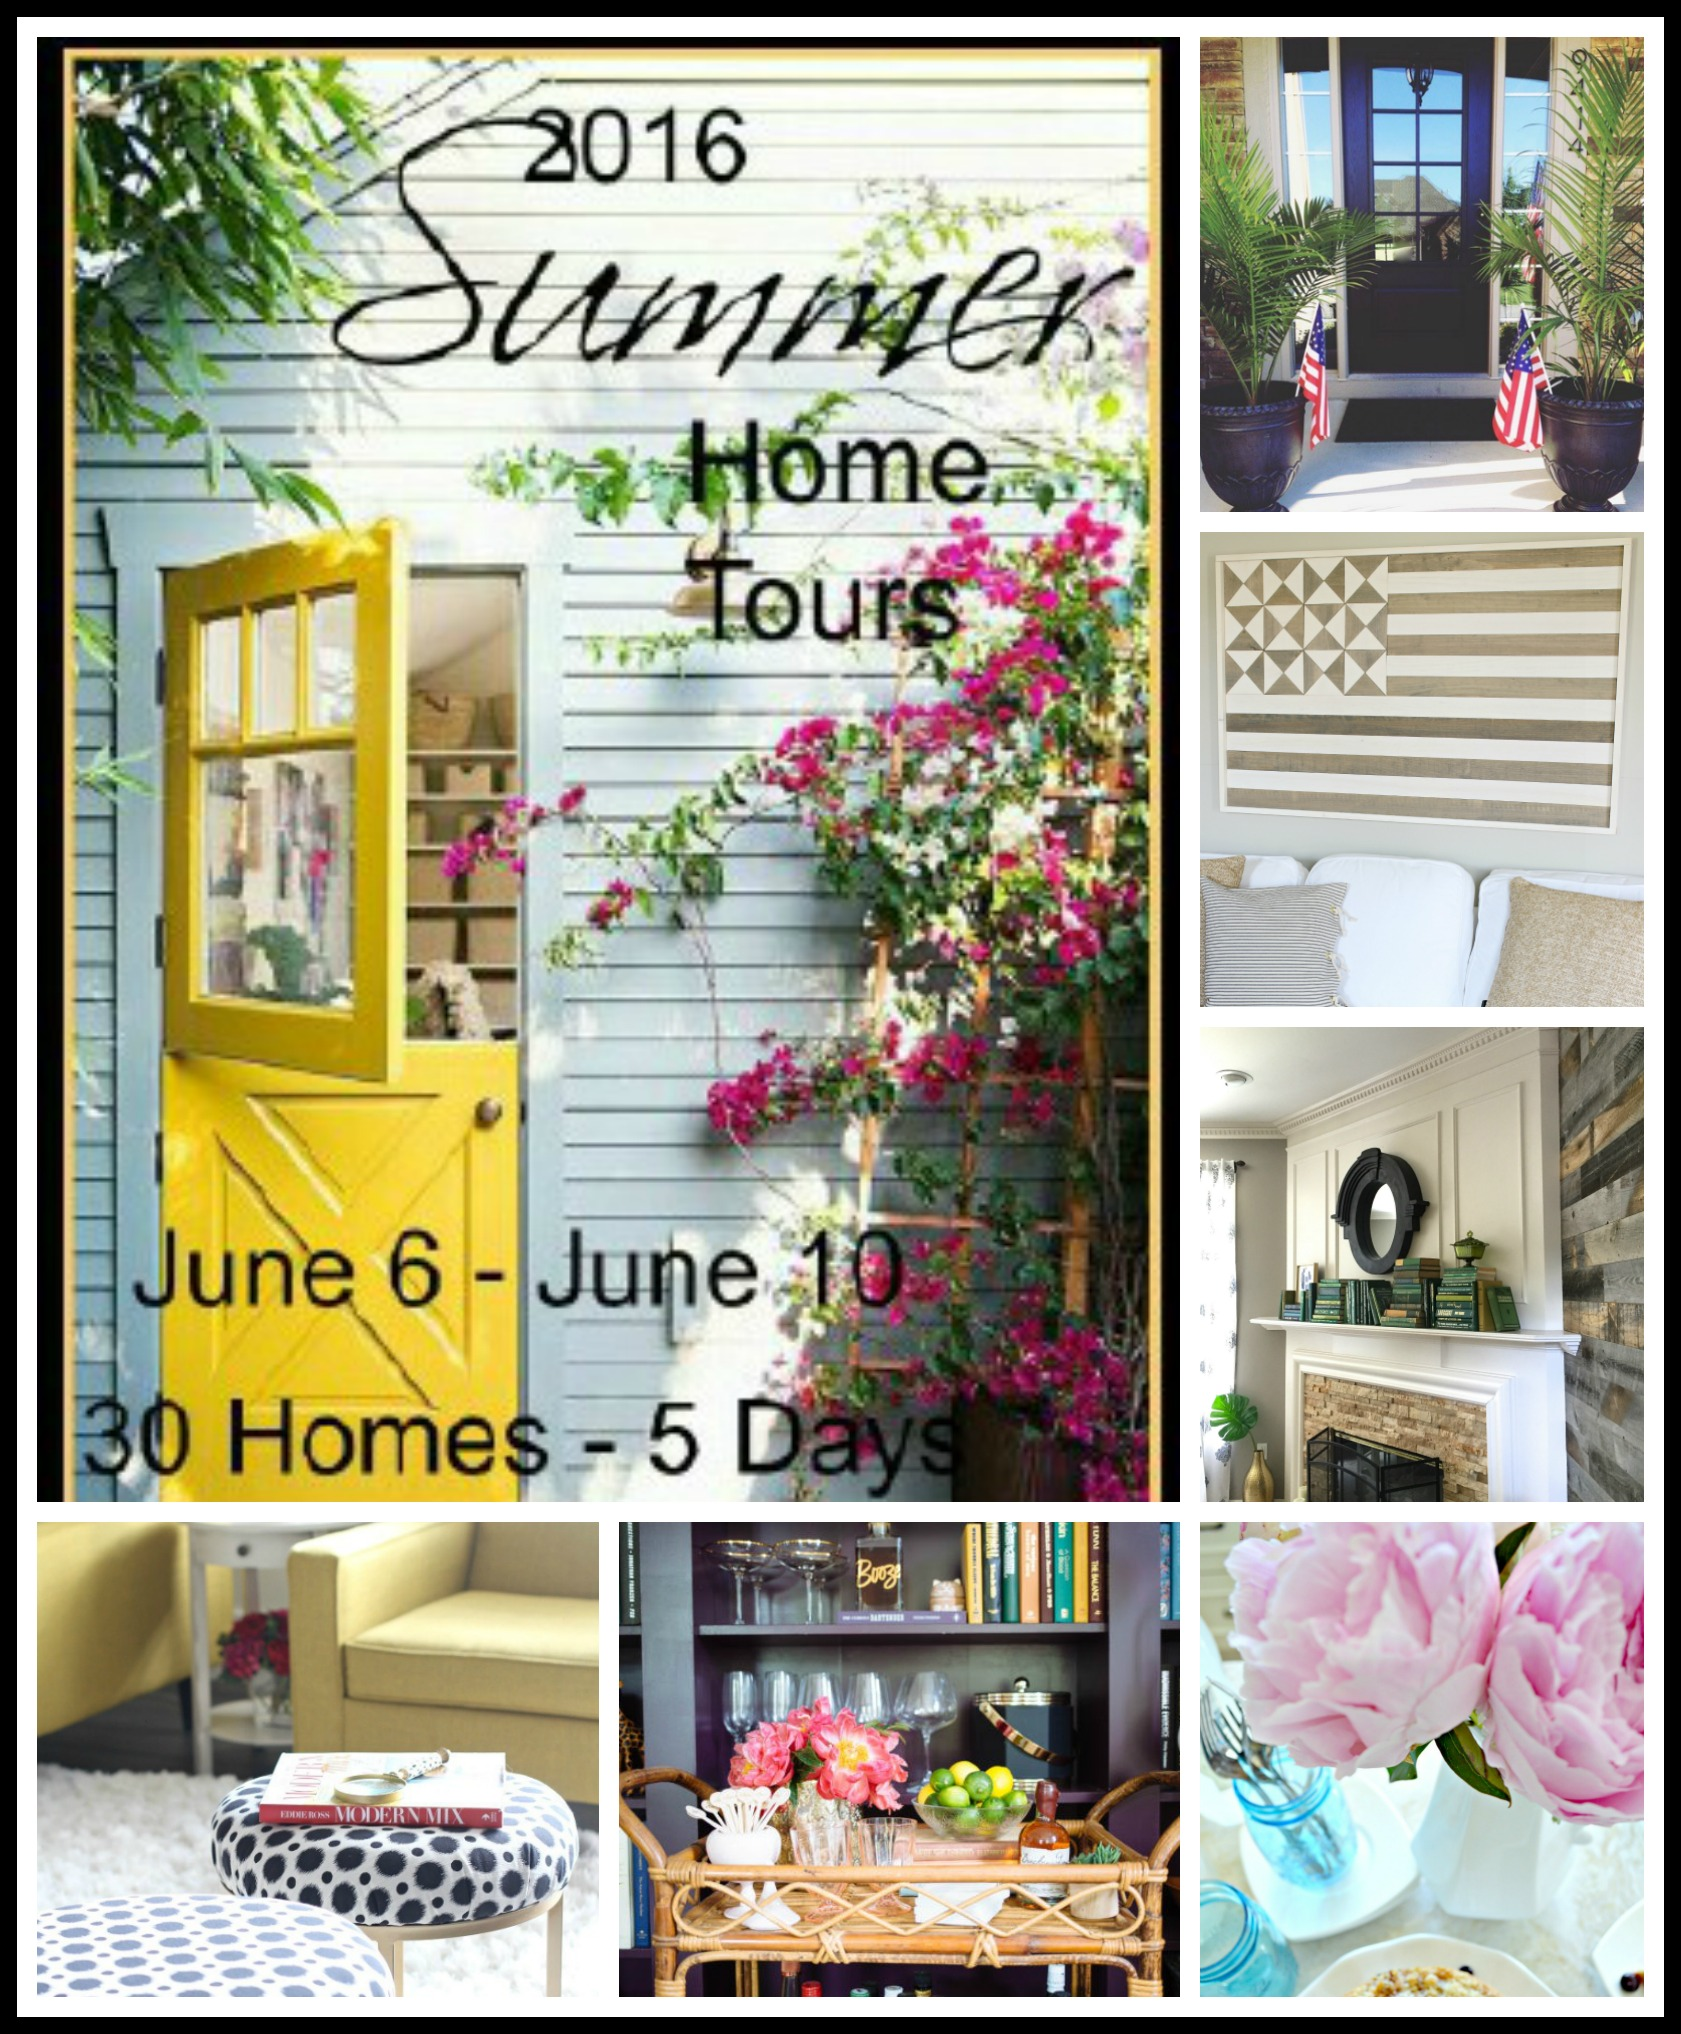 Beautiful Summer Home tours!